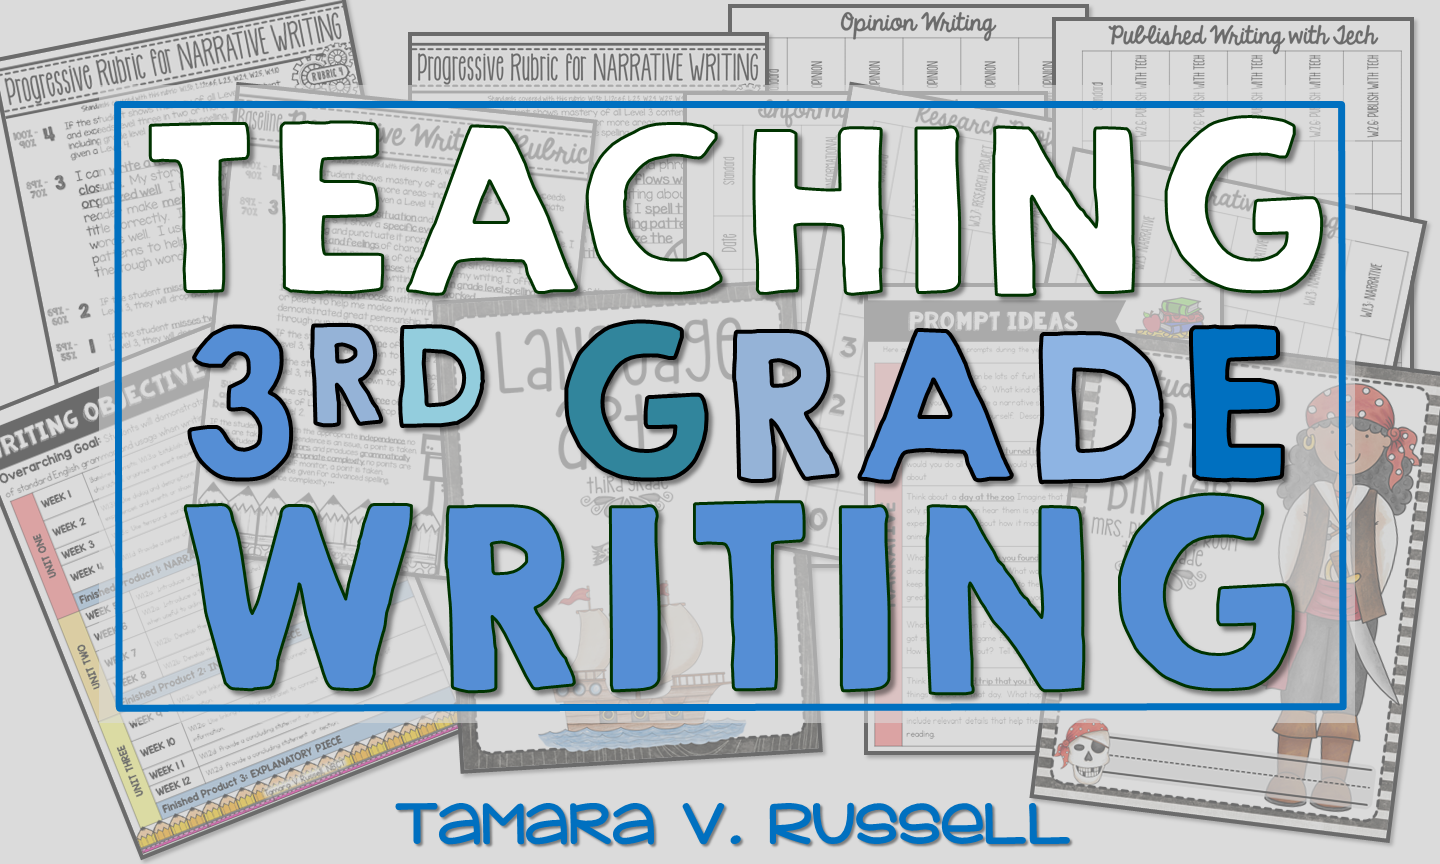 3rd grade writing The 2nd and 3rd grade materials support students at both the second and third grade levels in mastering reading, writing, and spelling skills.